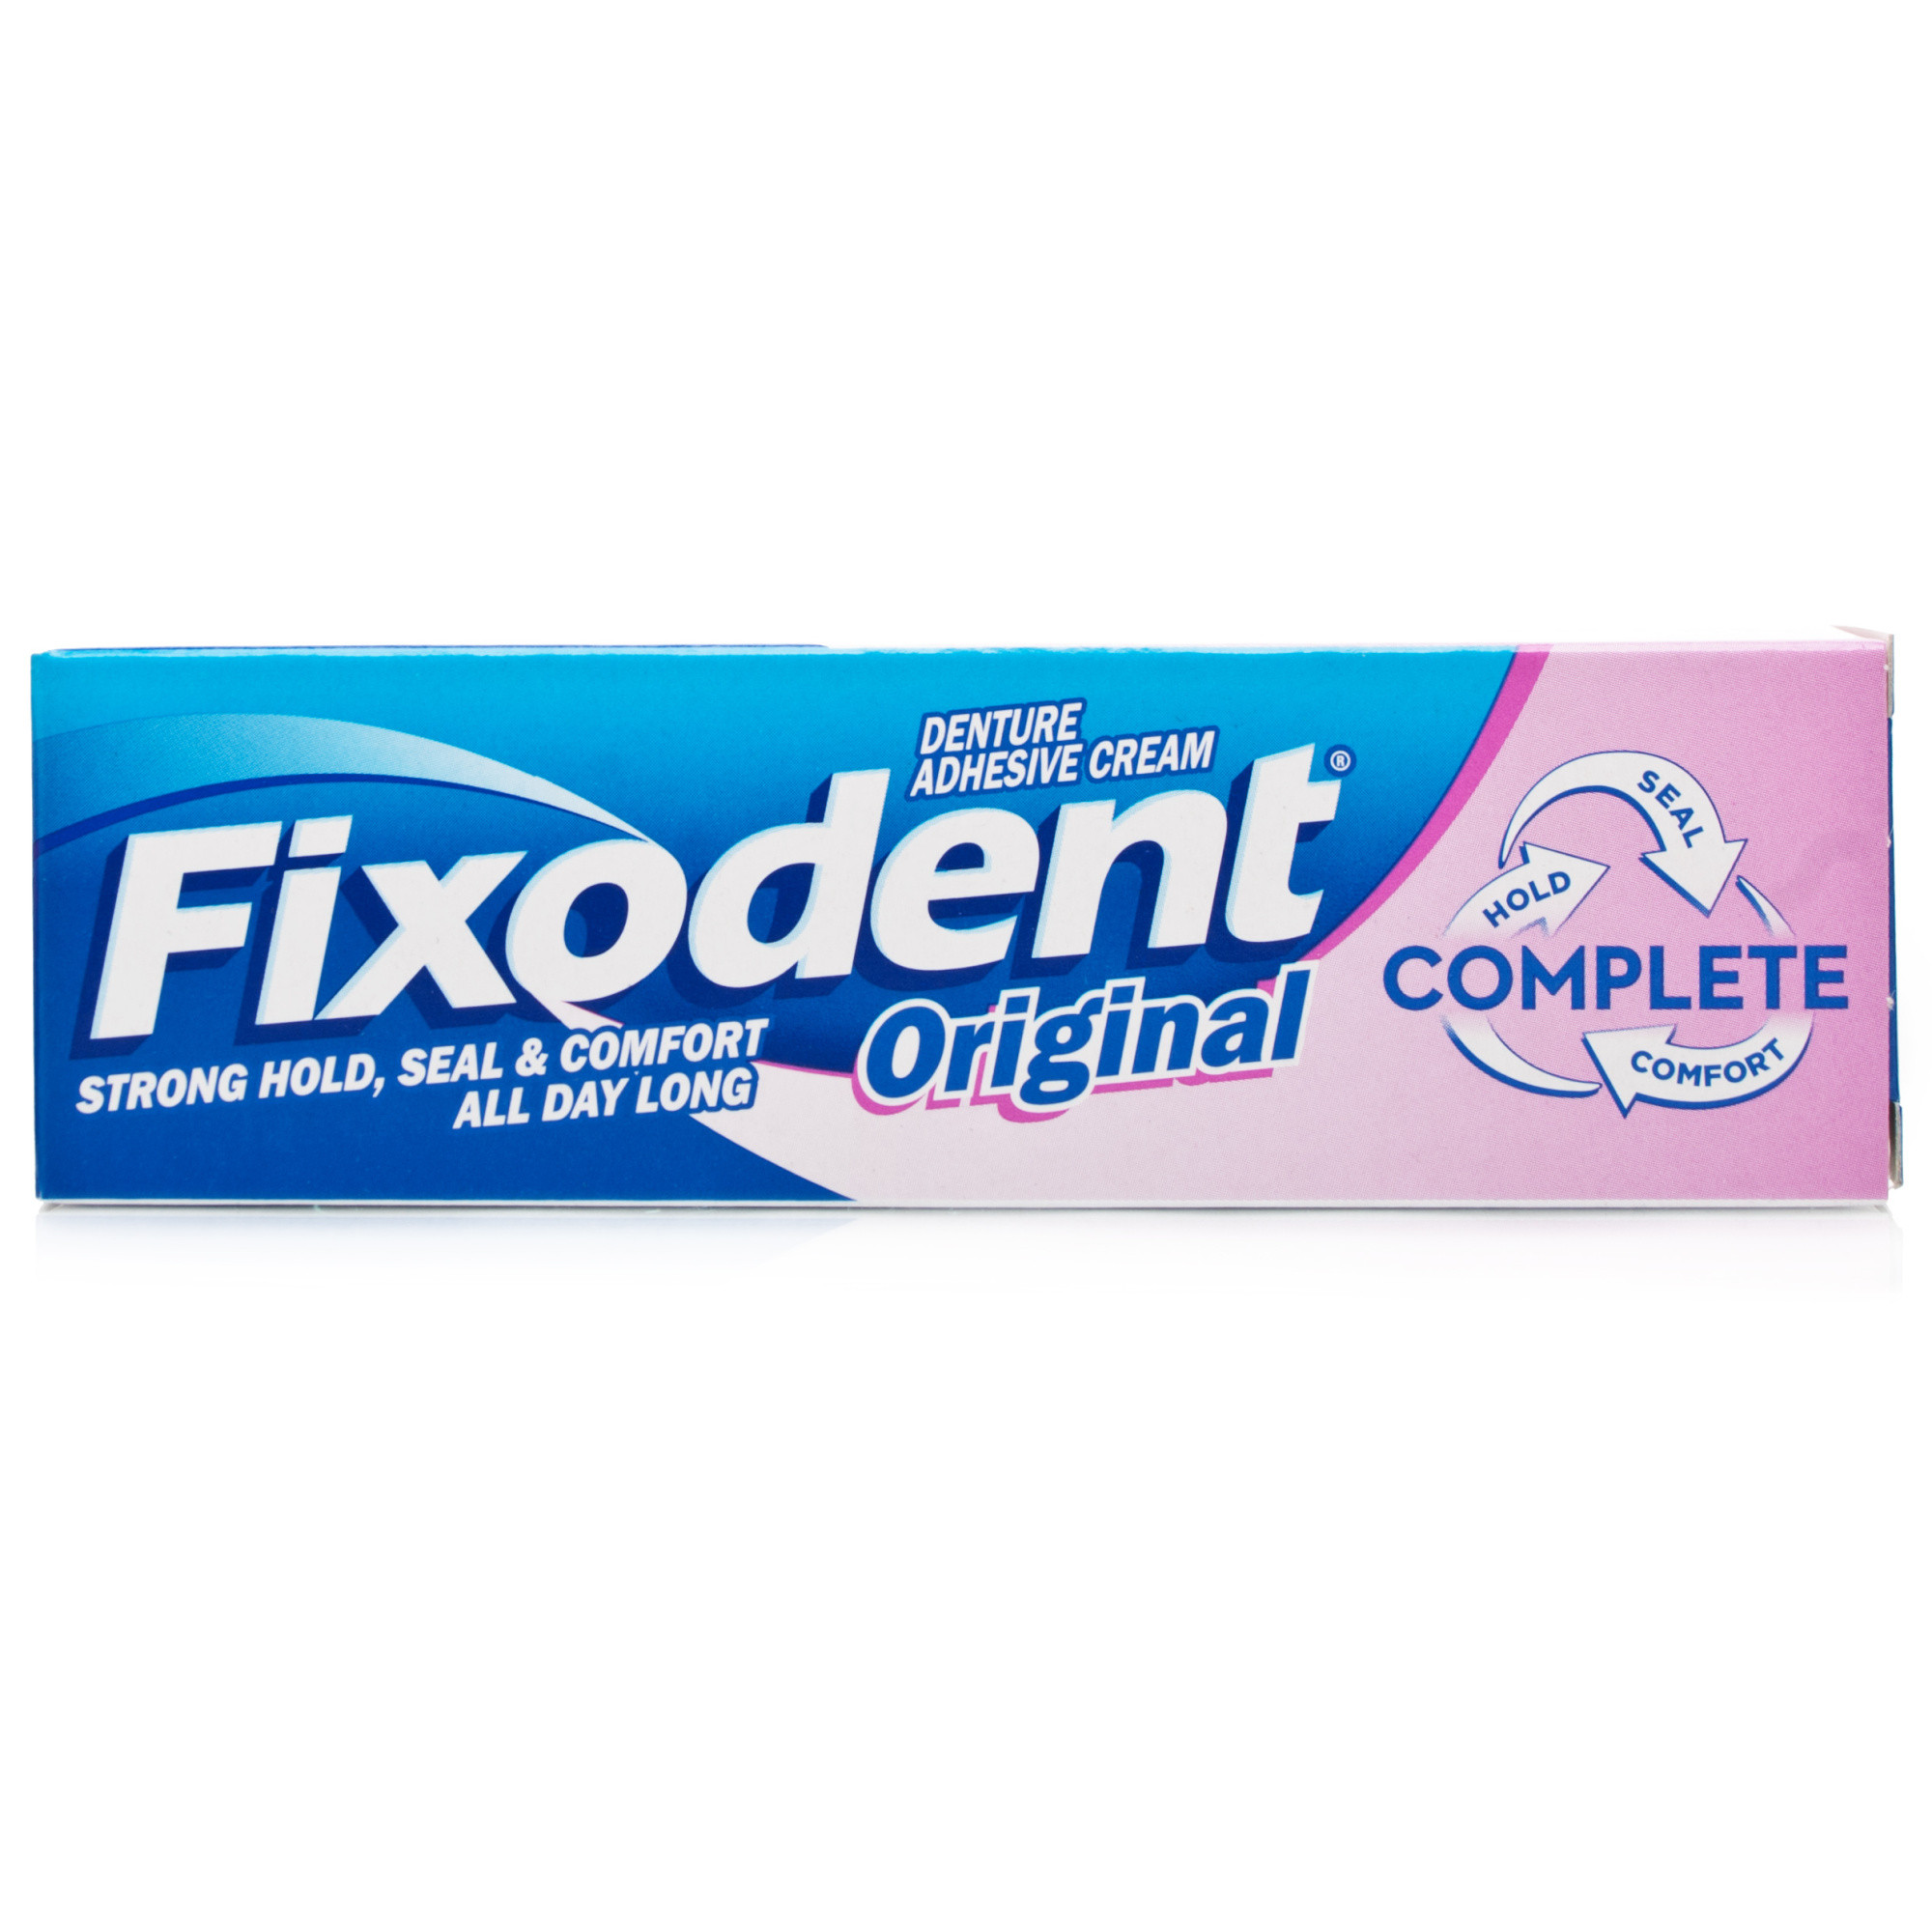 Fixodent Original Denture Adhesive Cream Mint